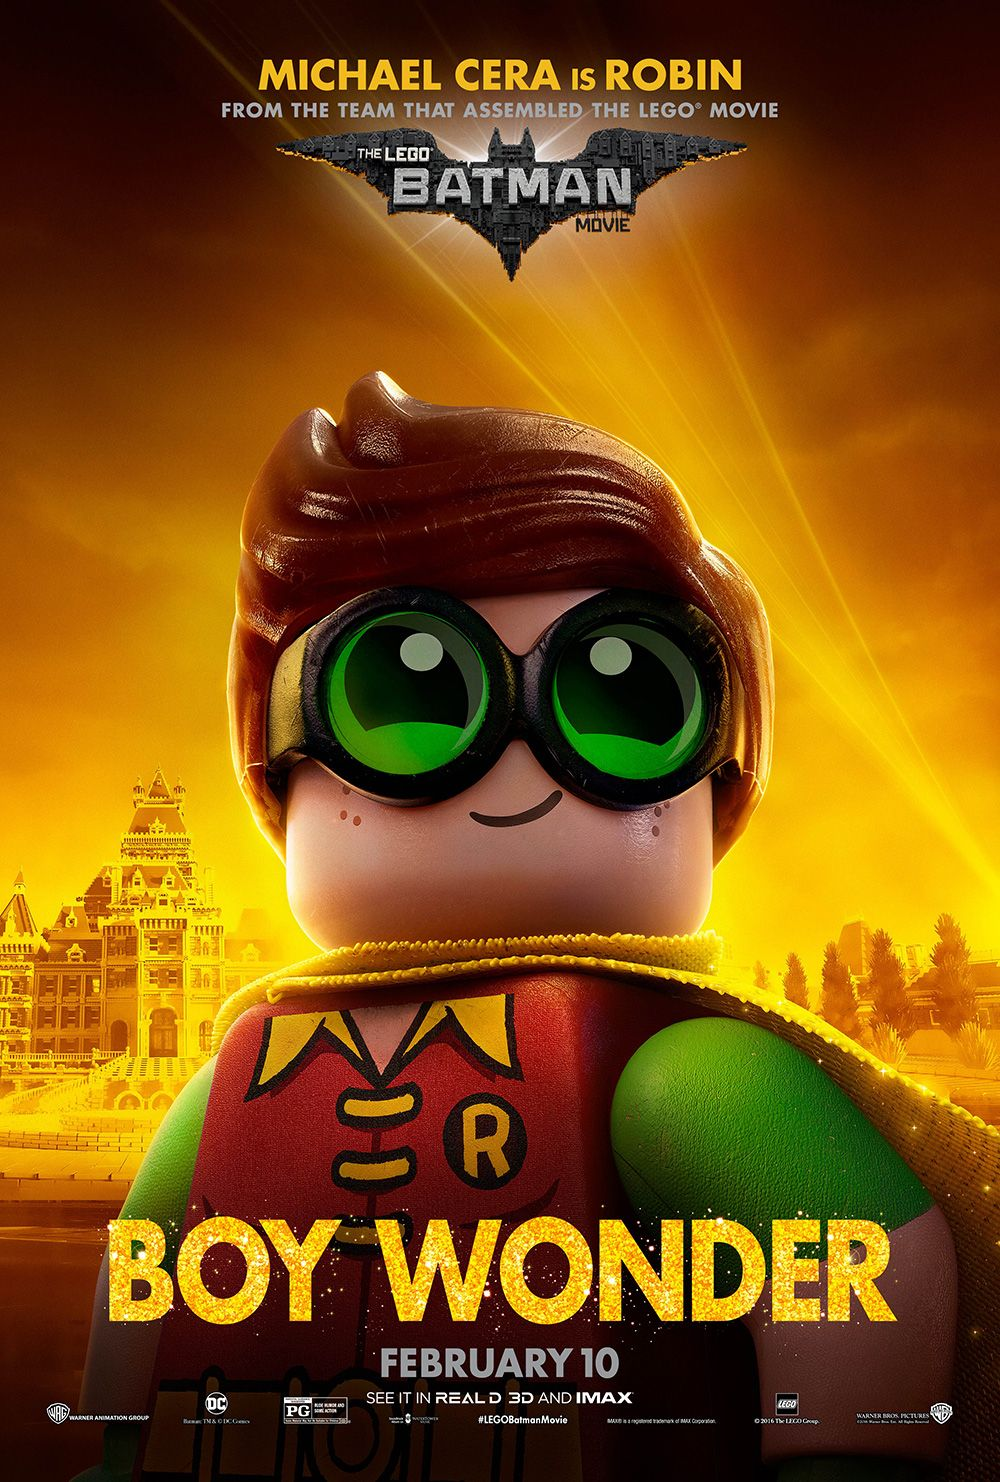 Lego Batman Filmen Downloads Lego Batman Film Plakat Biograf